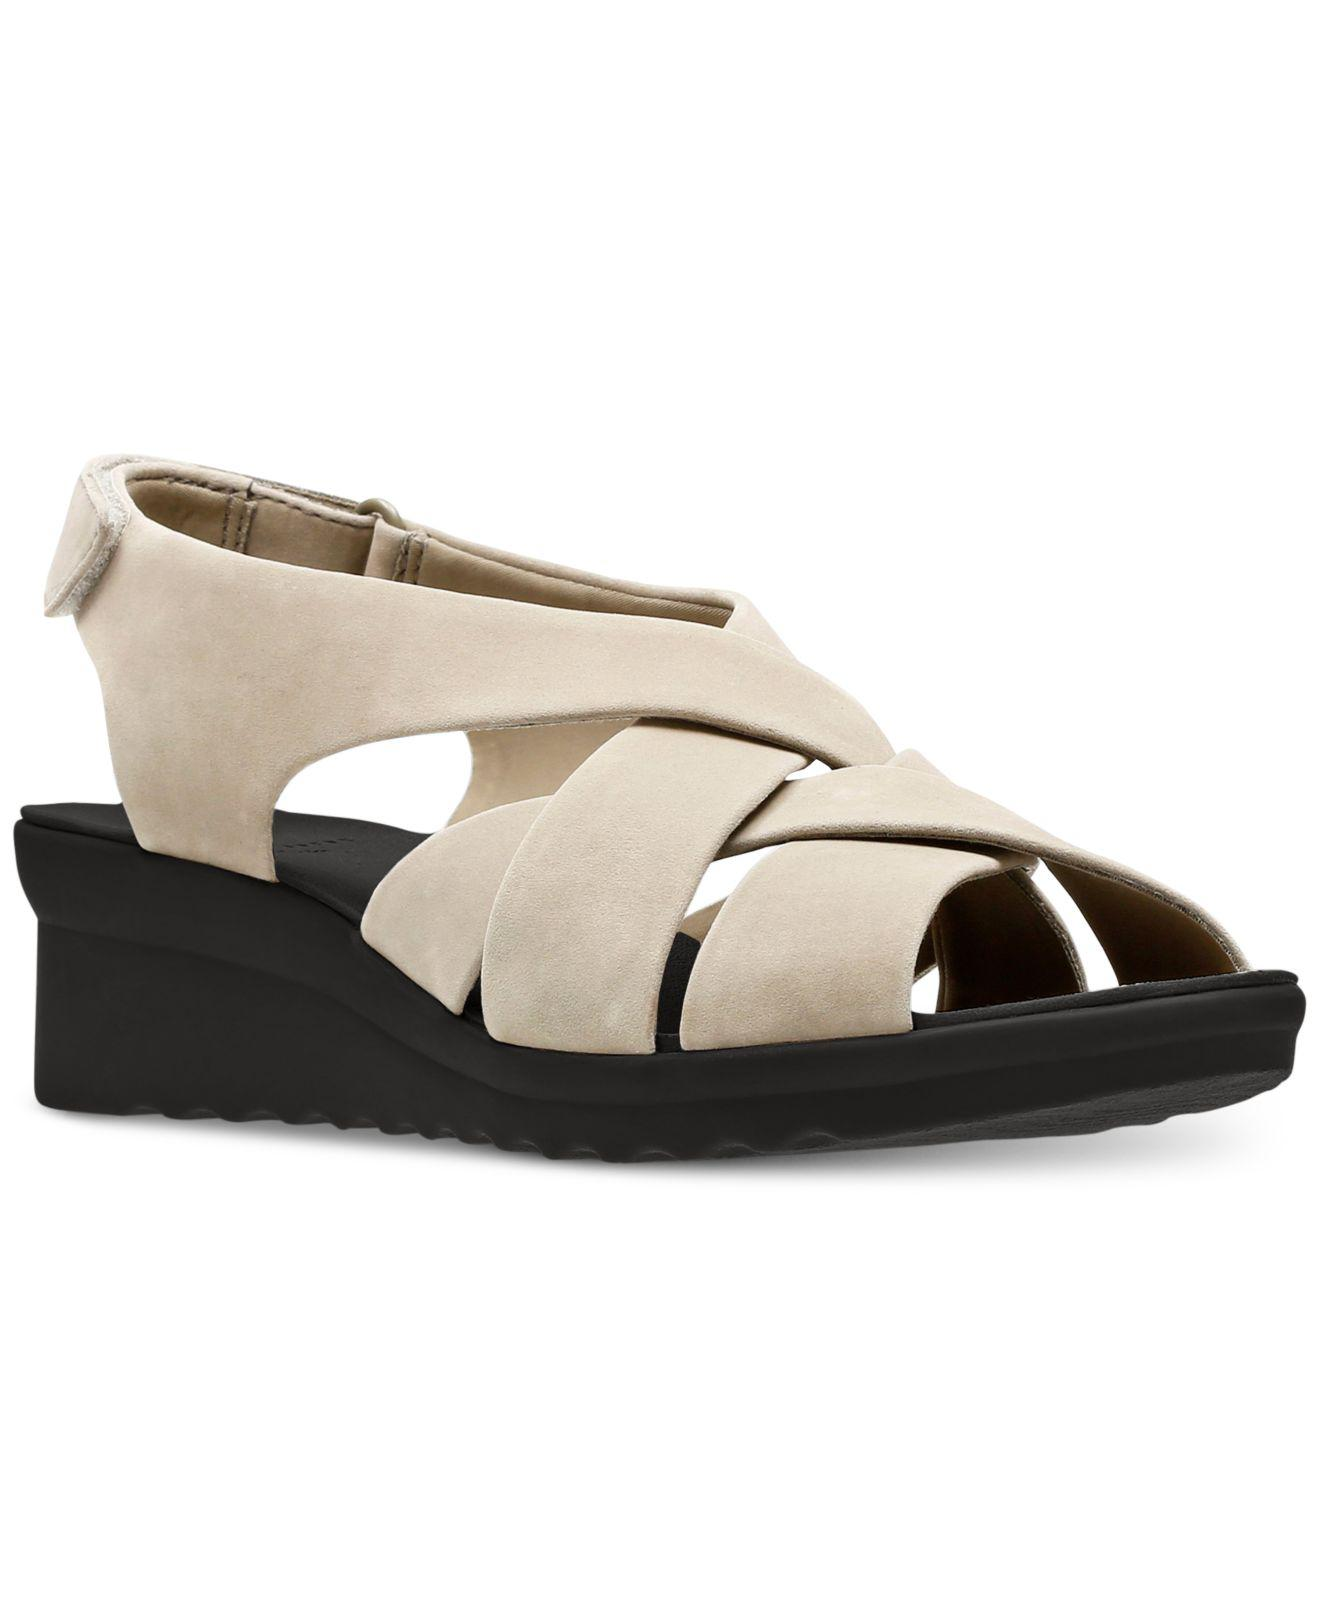 f4998f76ad2 Lyst - Clarks Cloudsteppers Caddell Jena Wedge Sandals